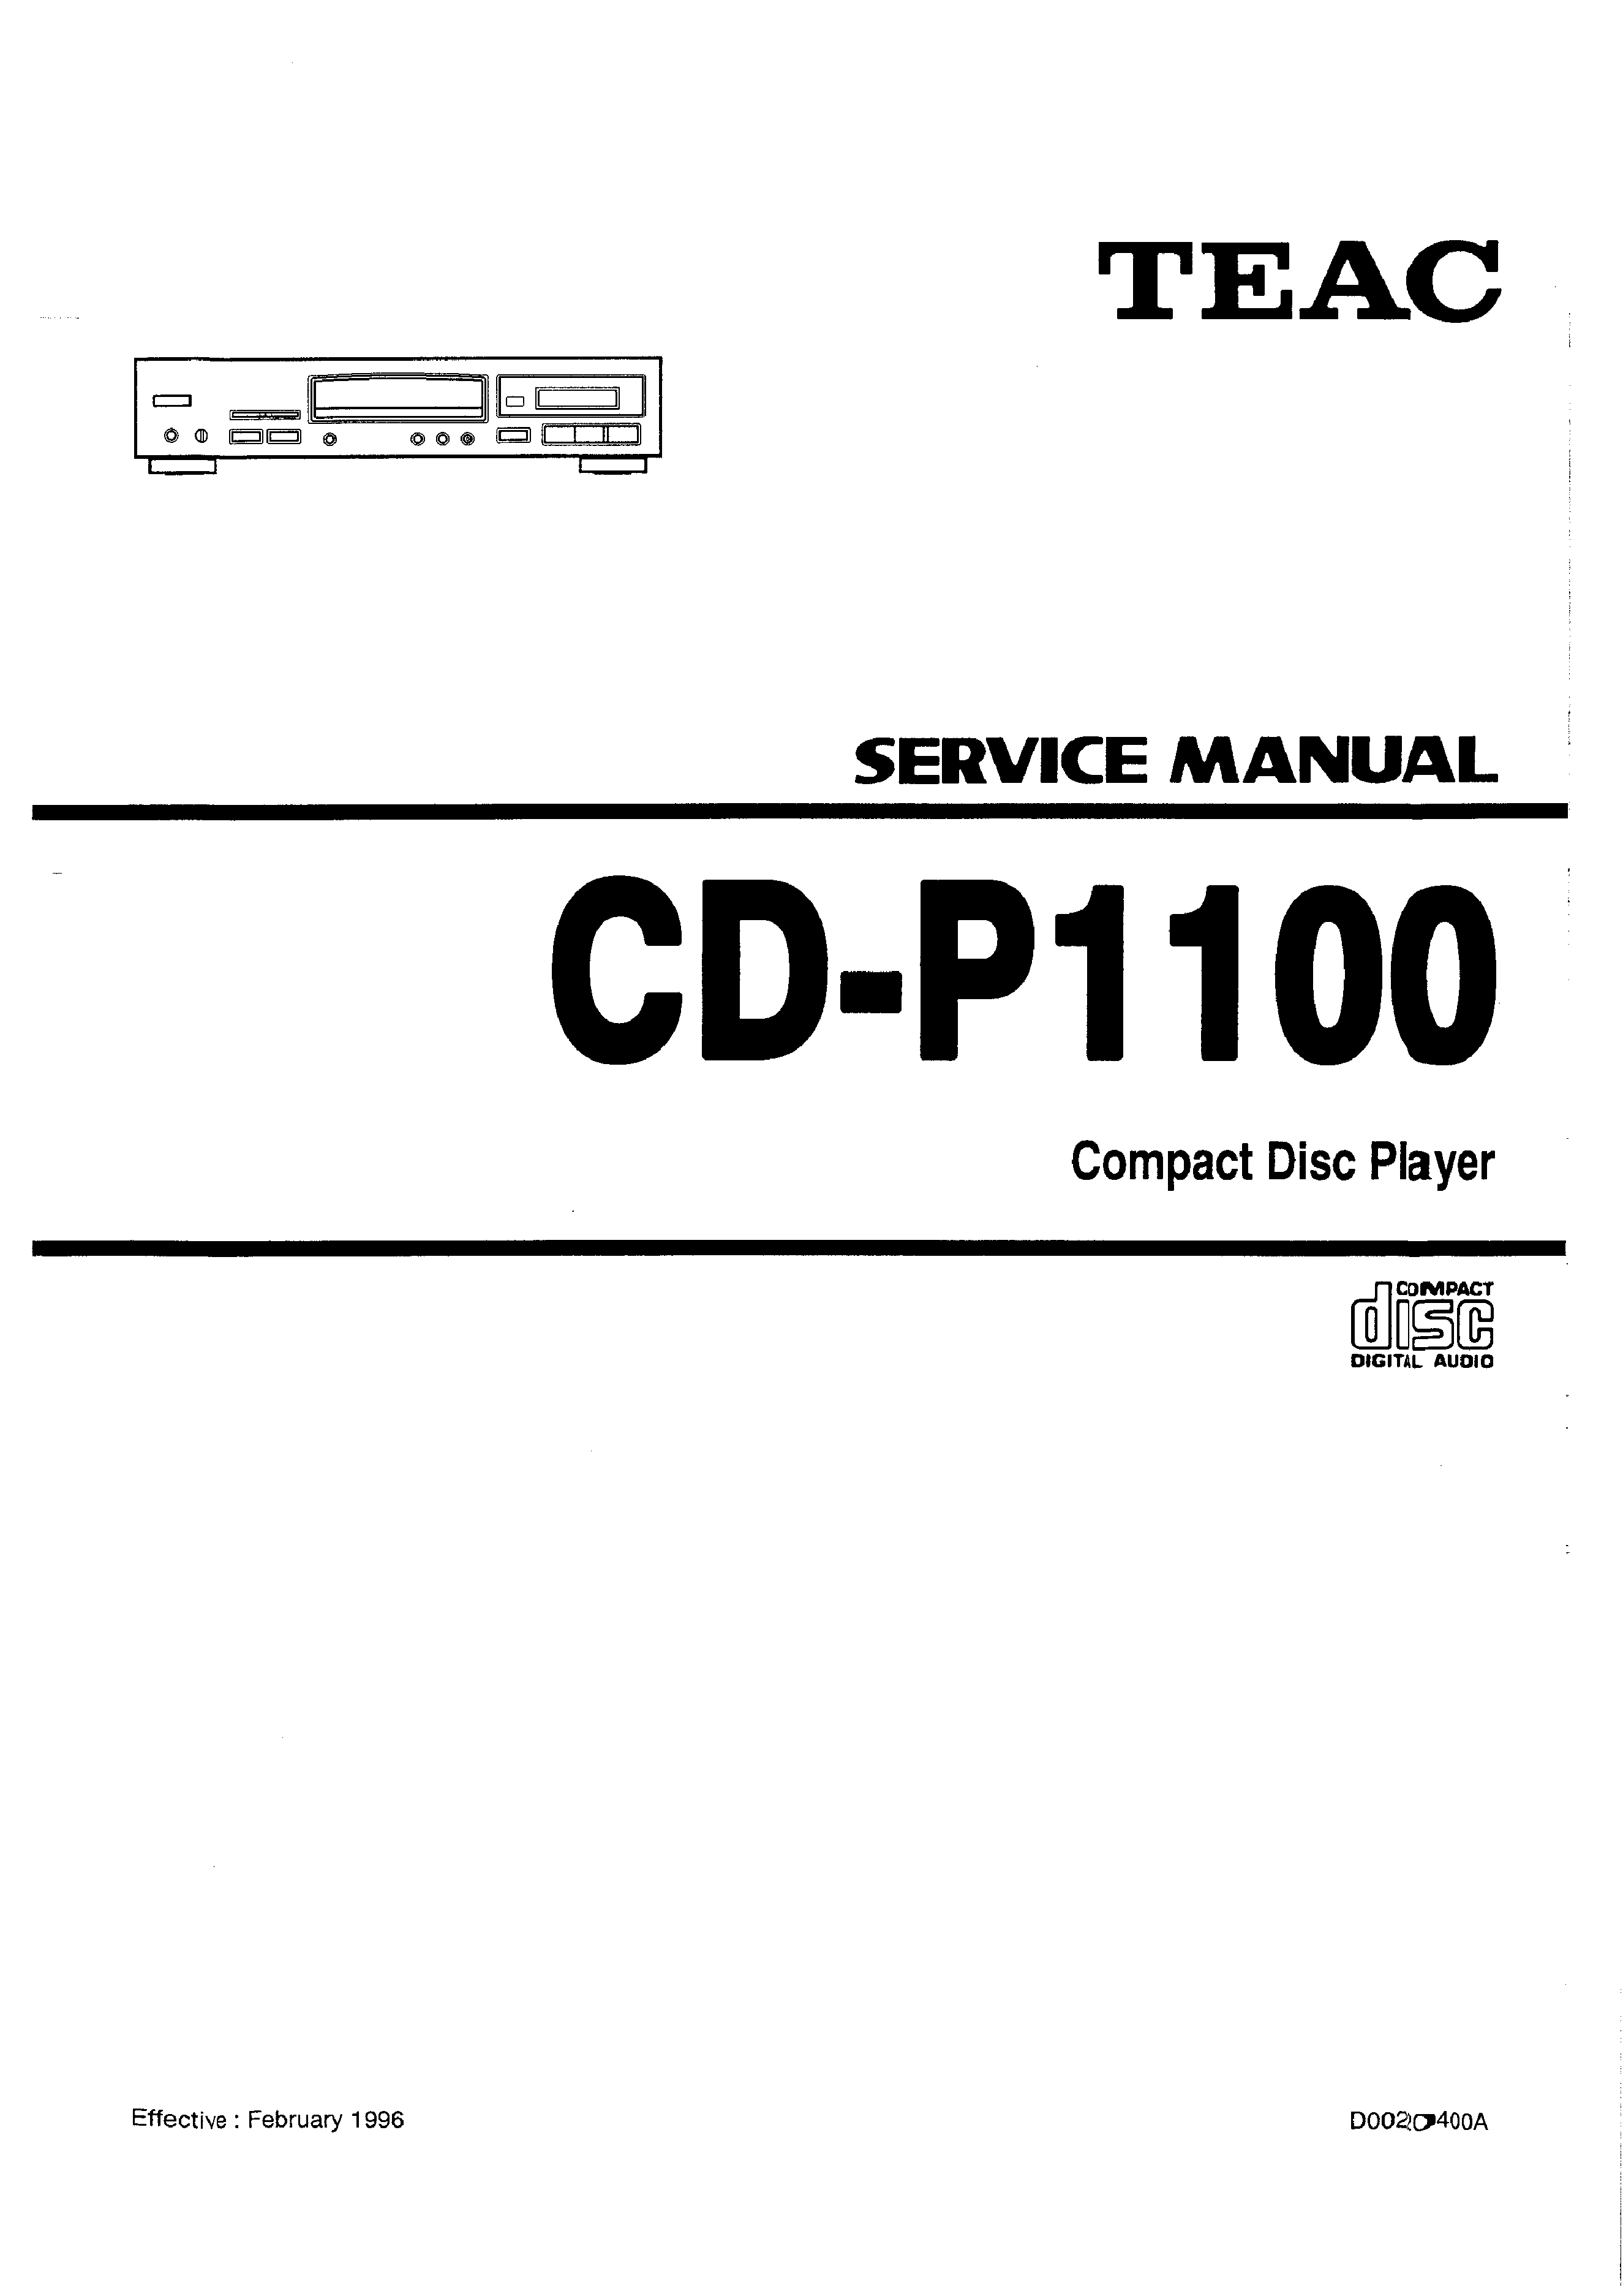 Service Manual for TEAC CDP1100 - Download